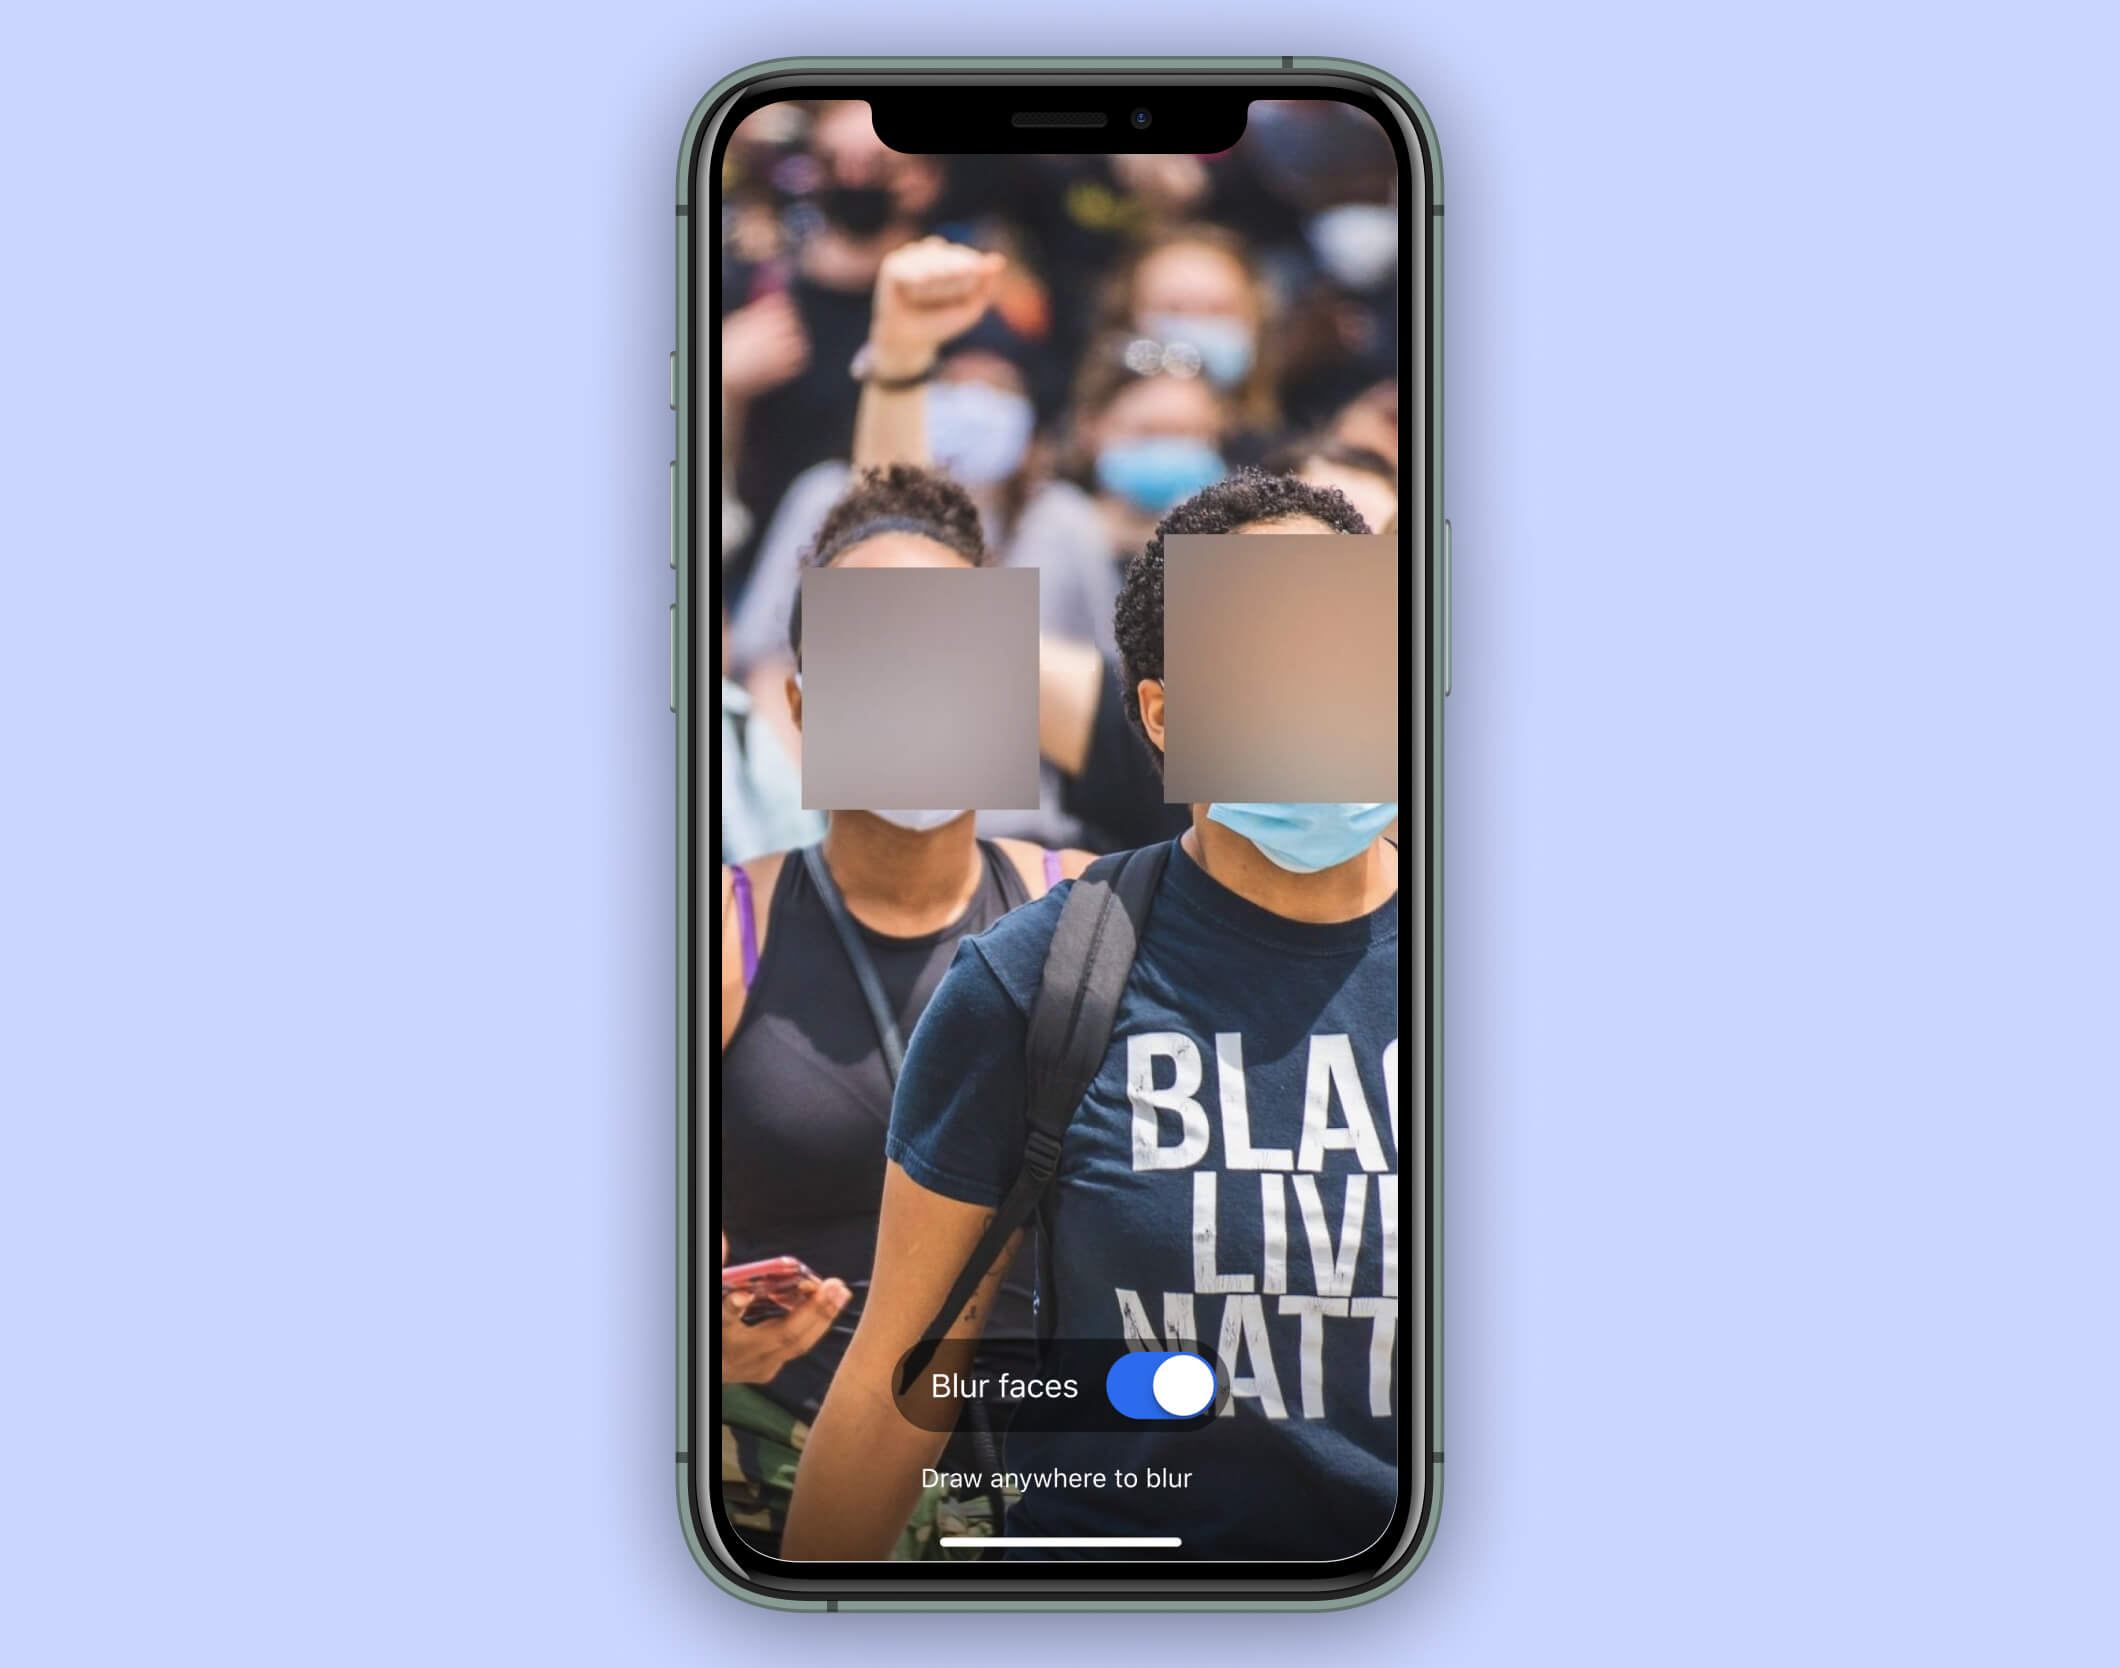 Secure messaging app Signal introduces face blur to protect protesters' identities